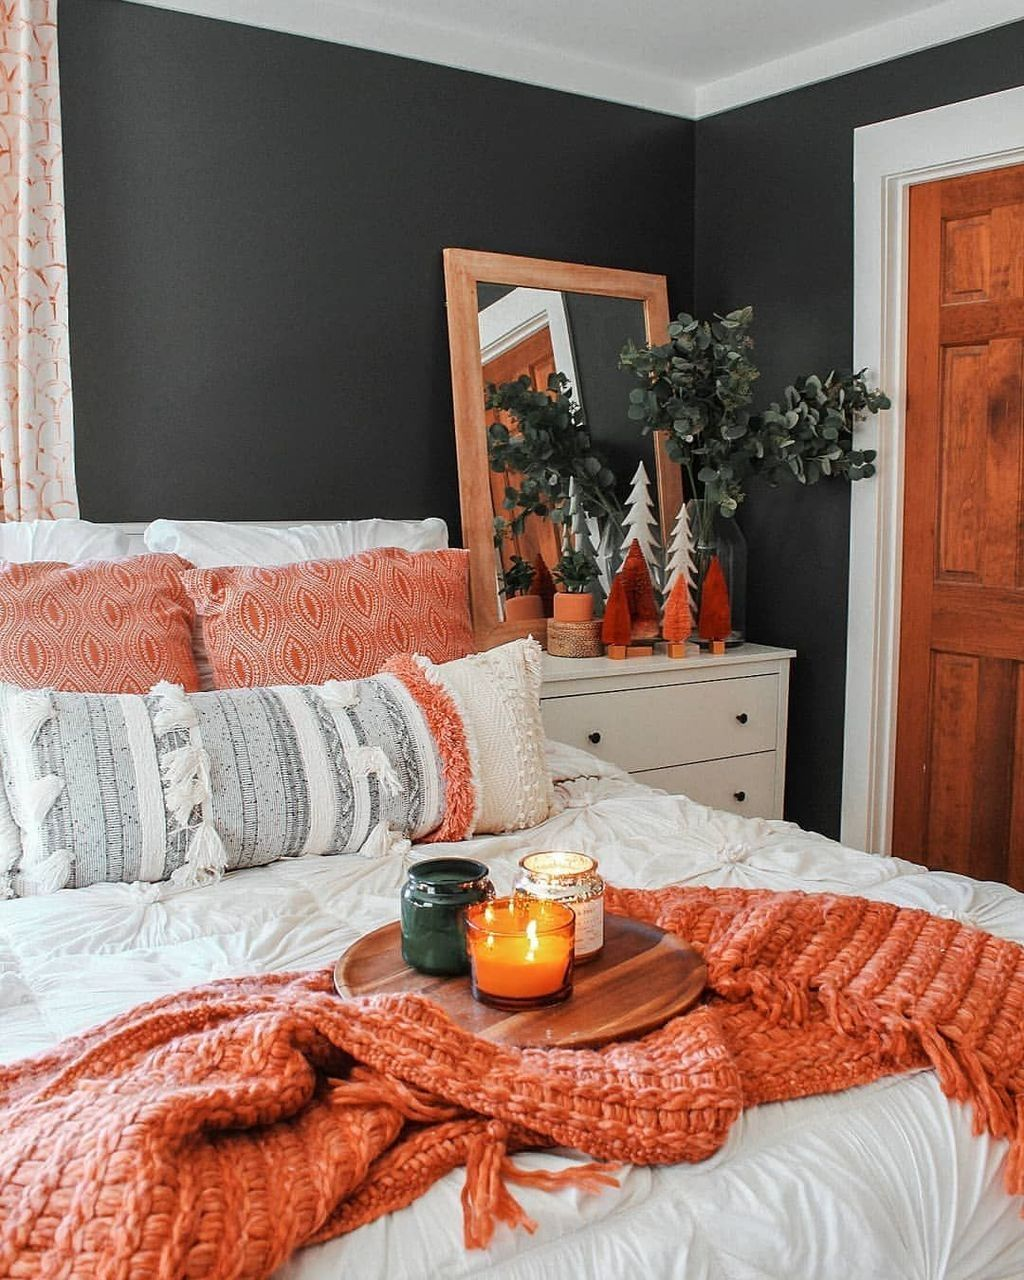 40 Awesome Fall Master Bedroom Ideas in 2020 | Boho master ... on Boho Master Bedroom Ideas  id=57042